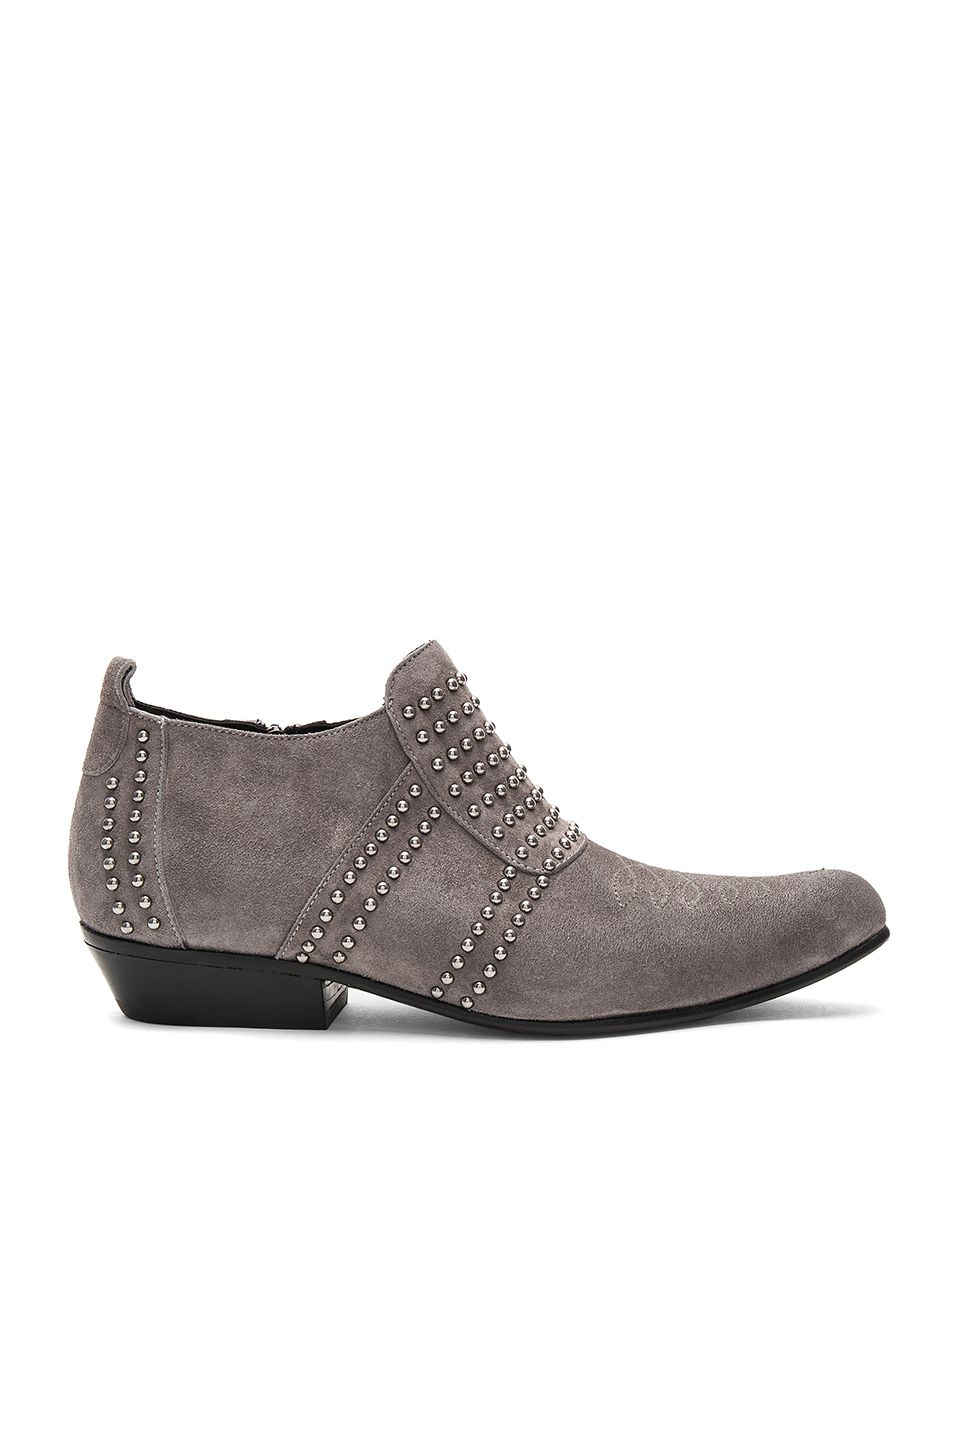 ANINE BING Low Charlie Bootie. #aninebing #shoes #